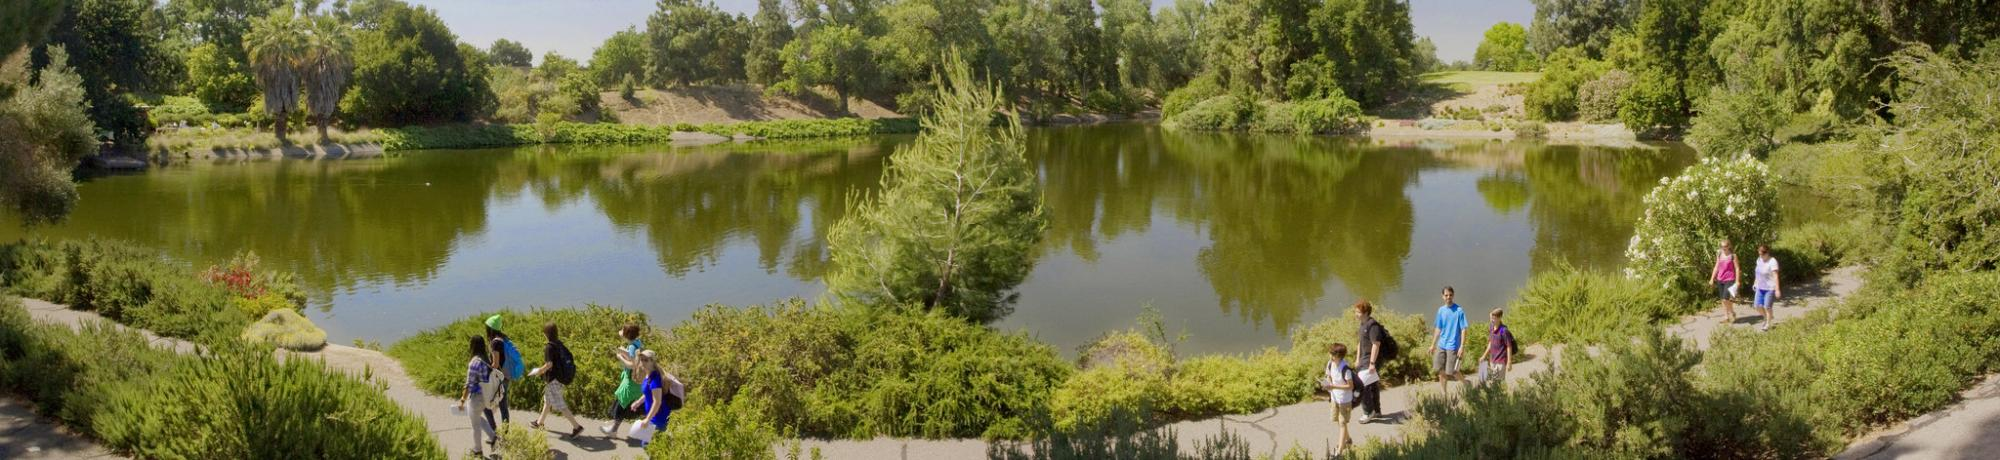 Image of visitors walking along the Arboretum Waterway in the UC Davis Arboretum's Mediterranean Collection.